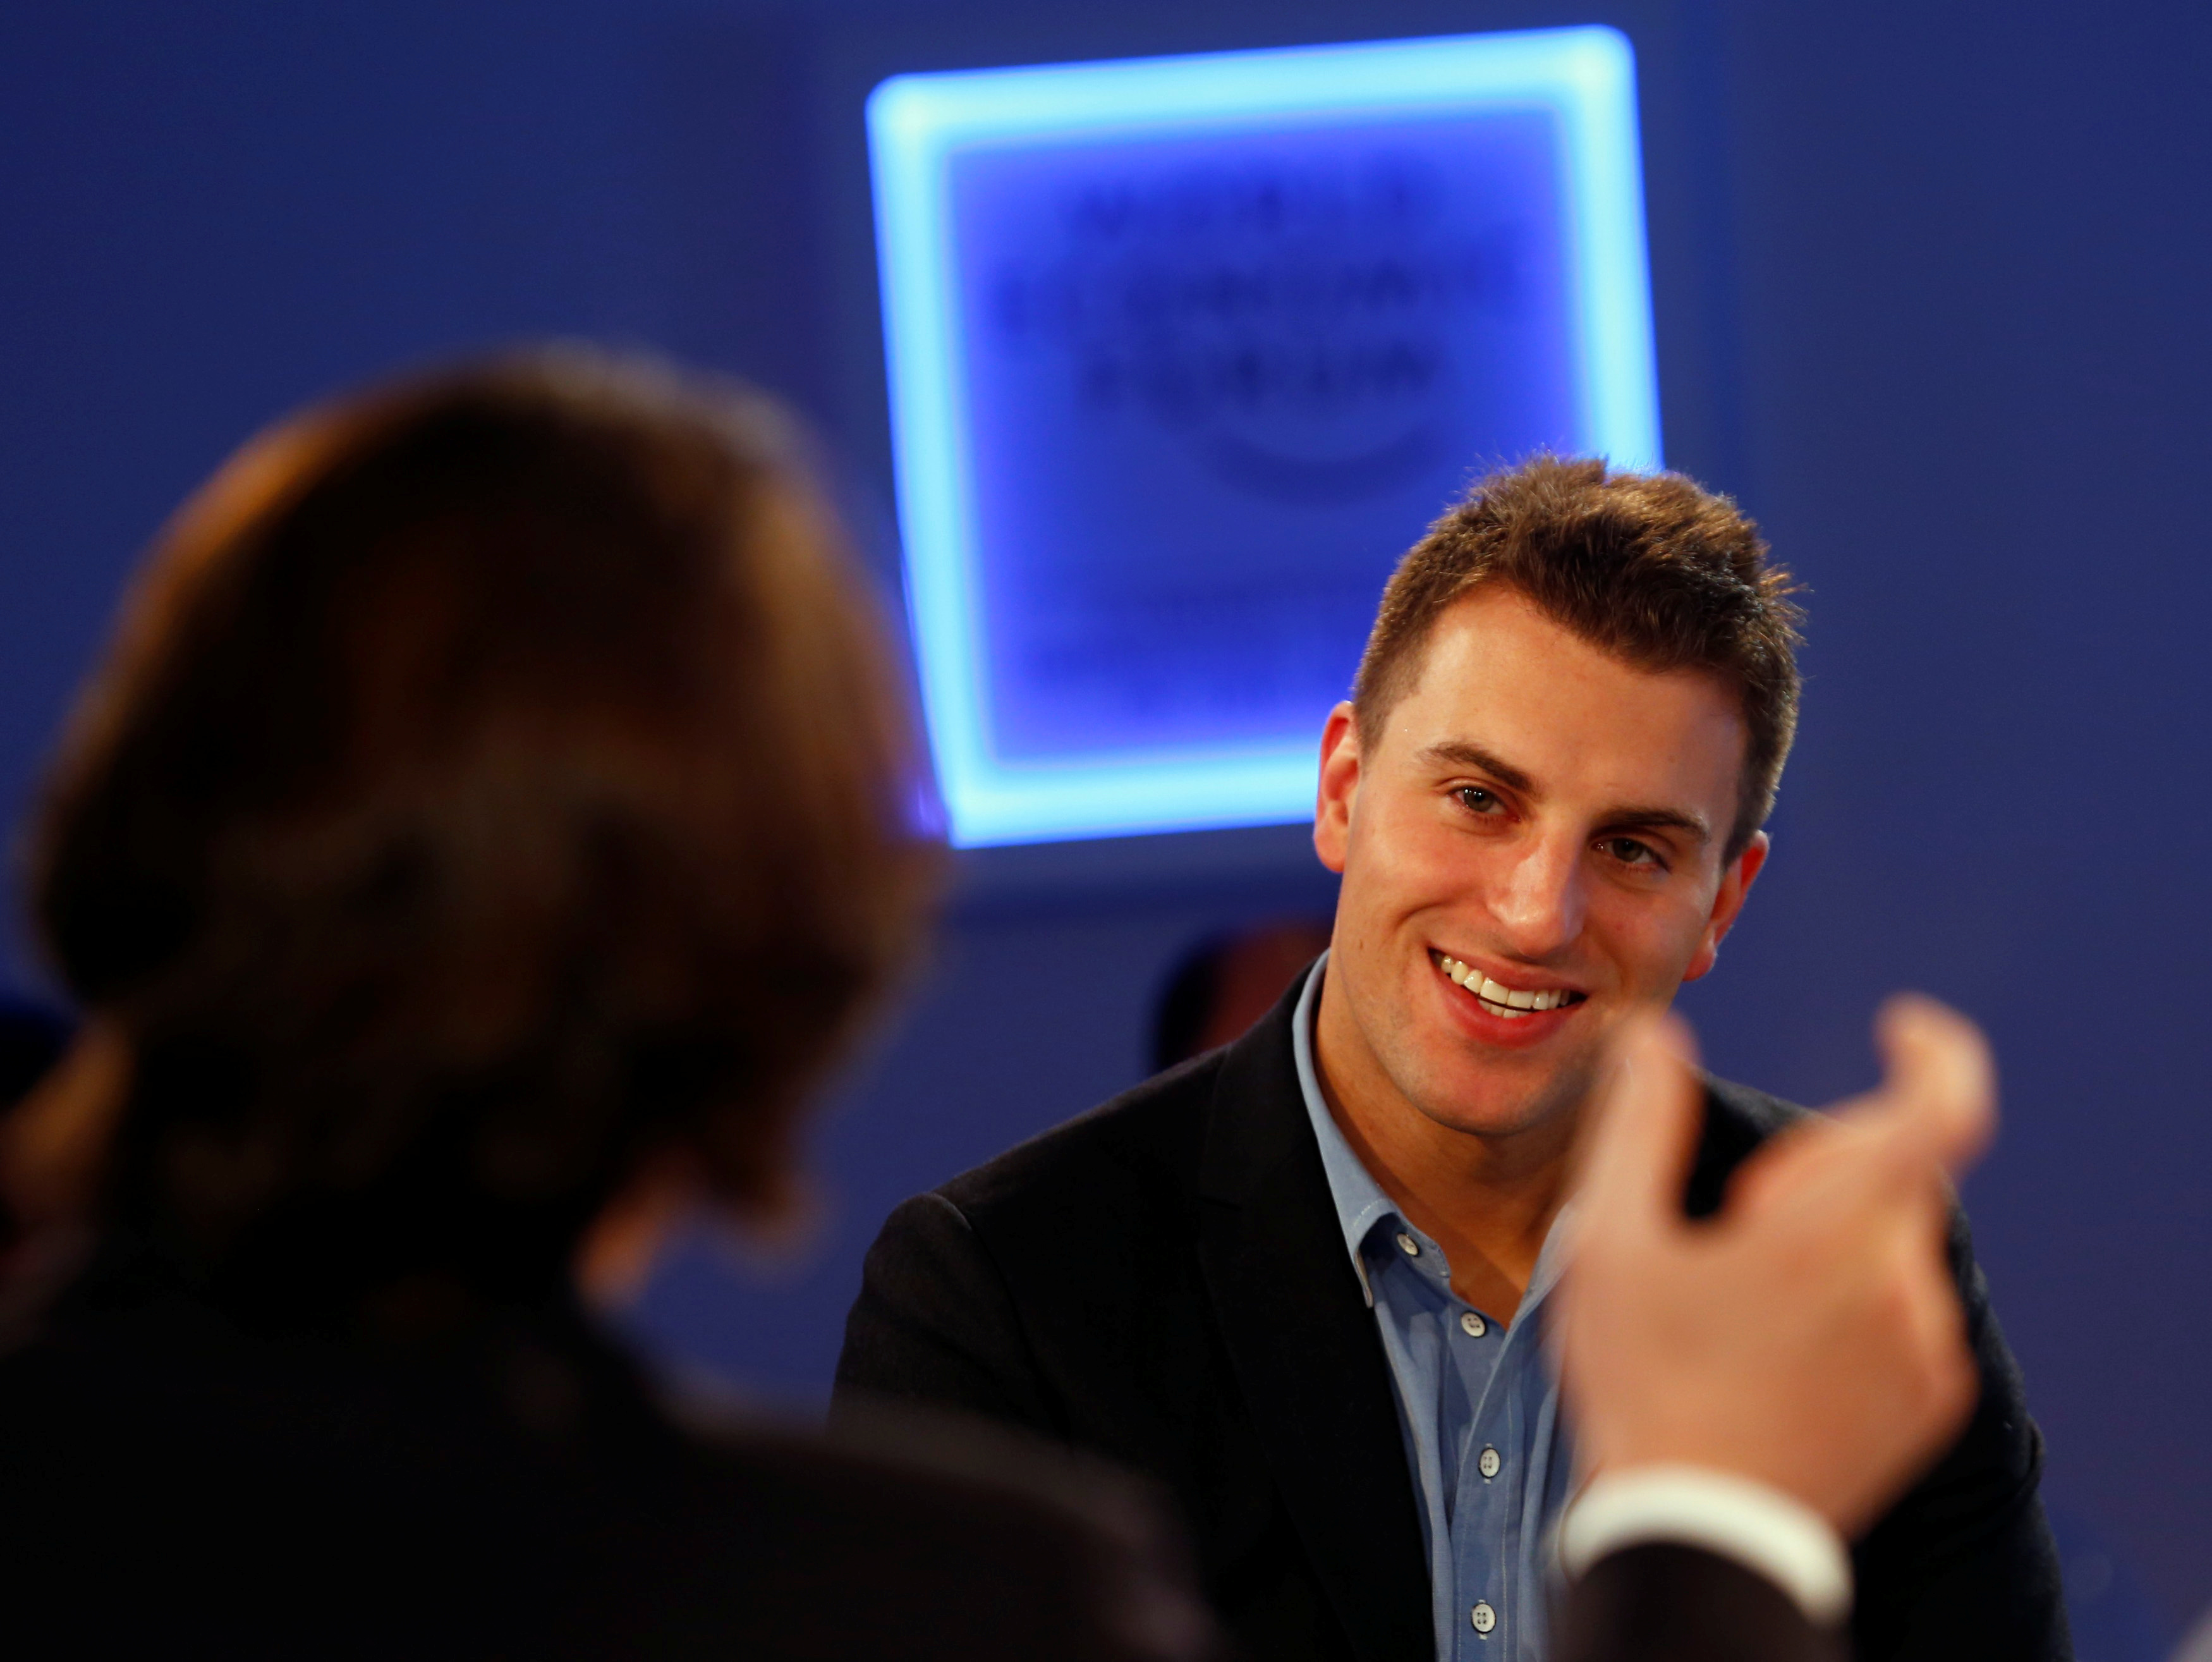 Chesky CEO of Airbnb attends session of World Economic Forum in Davos